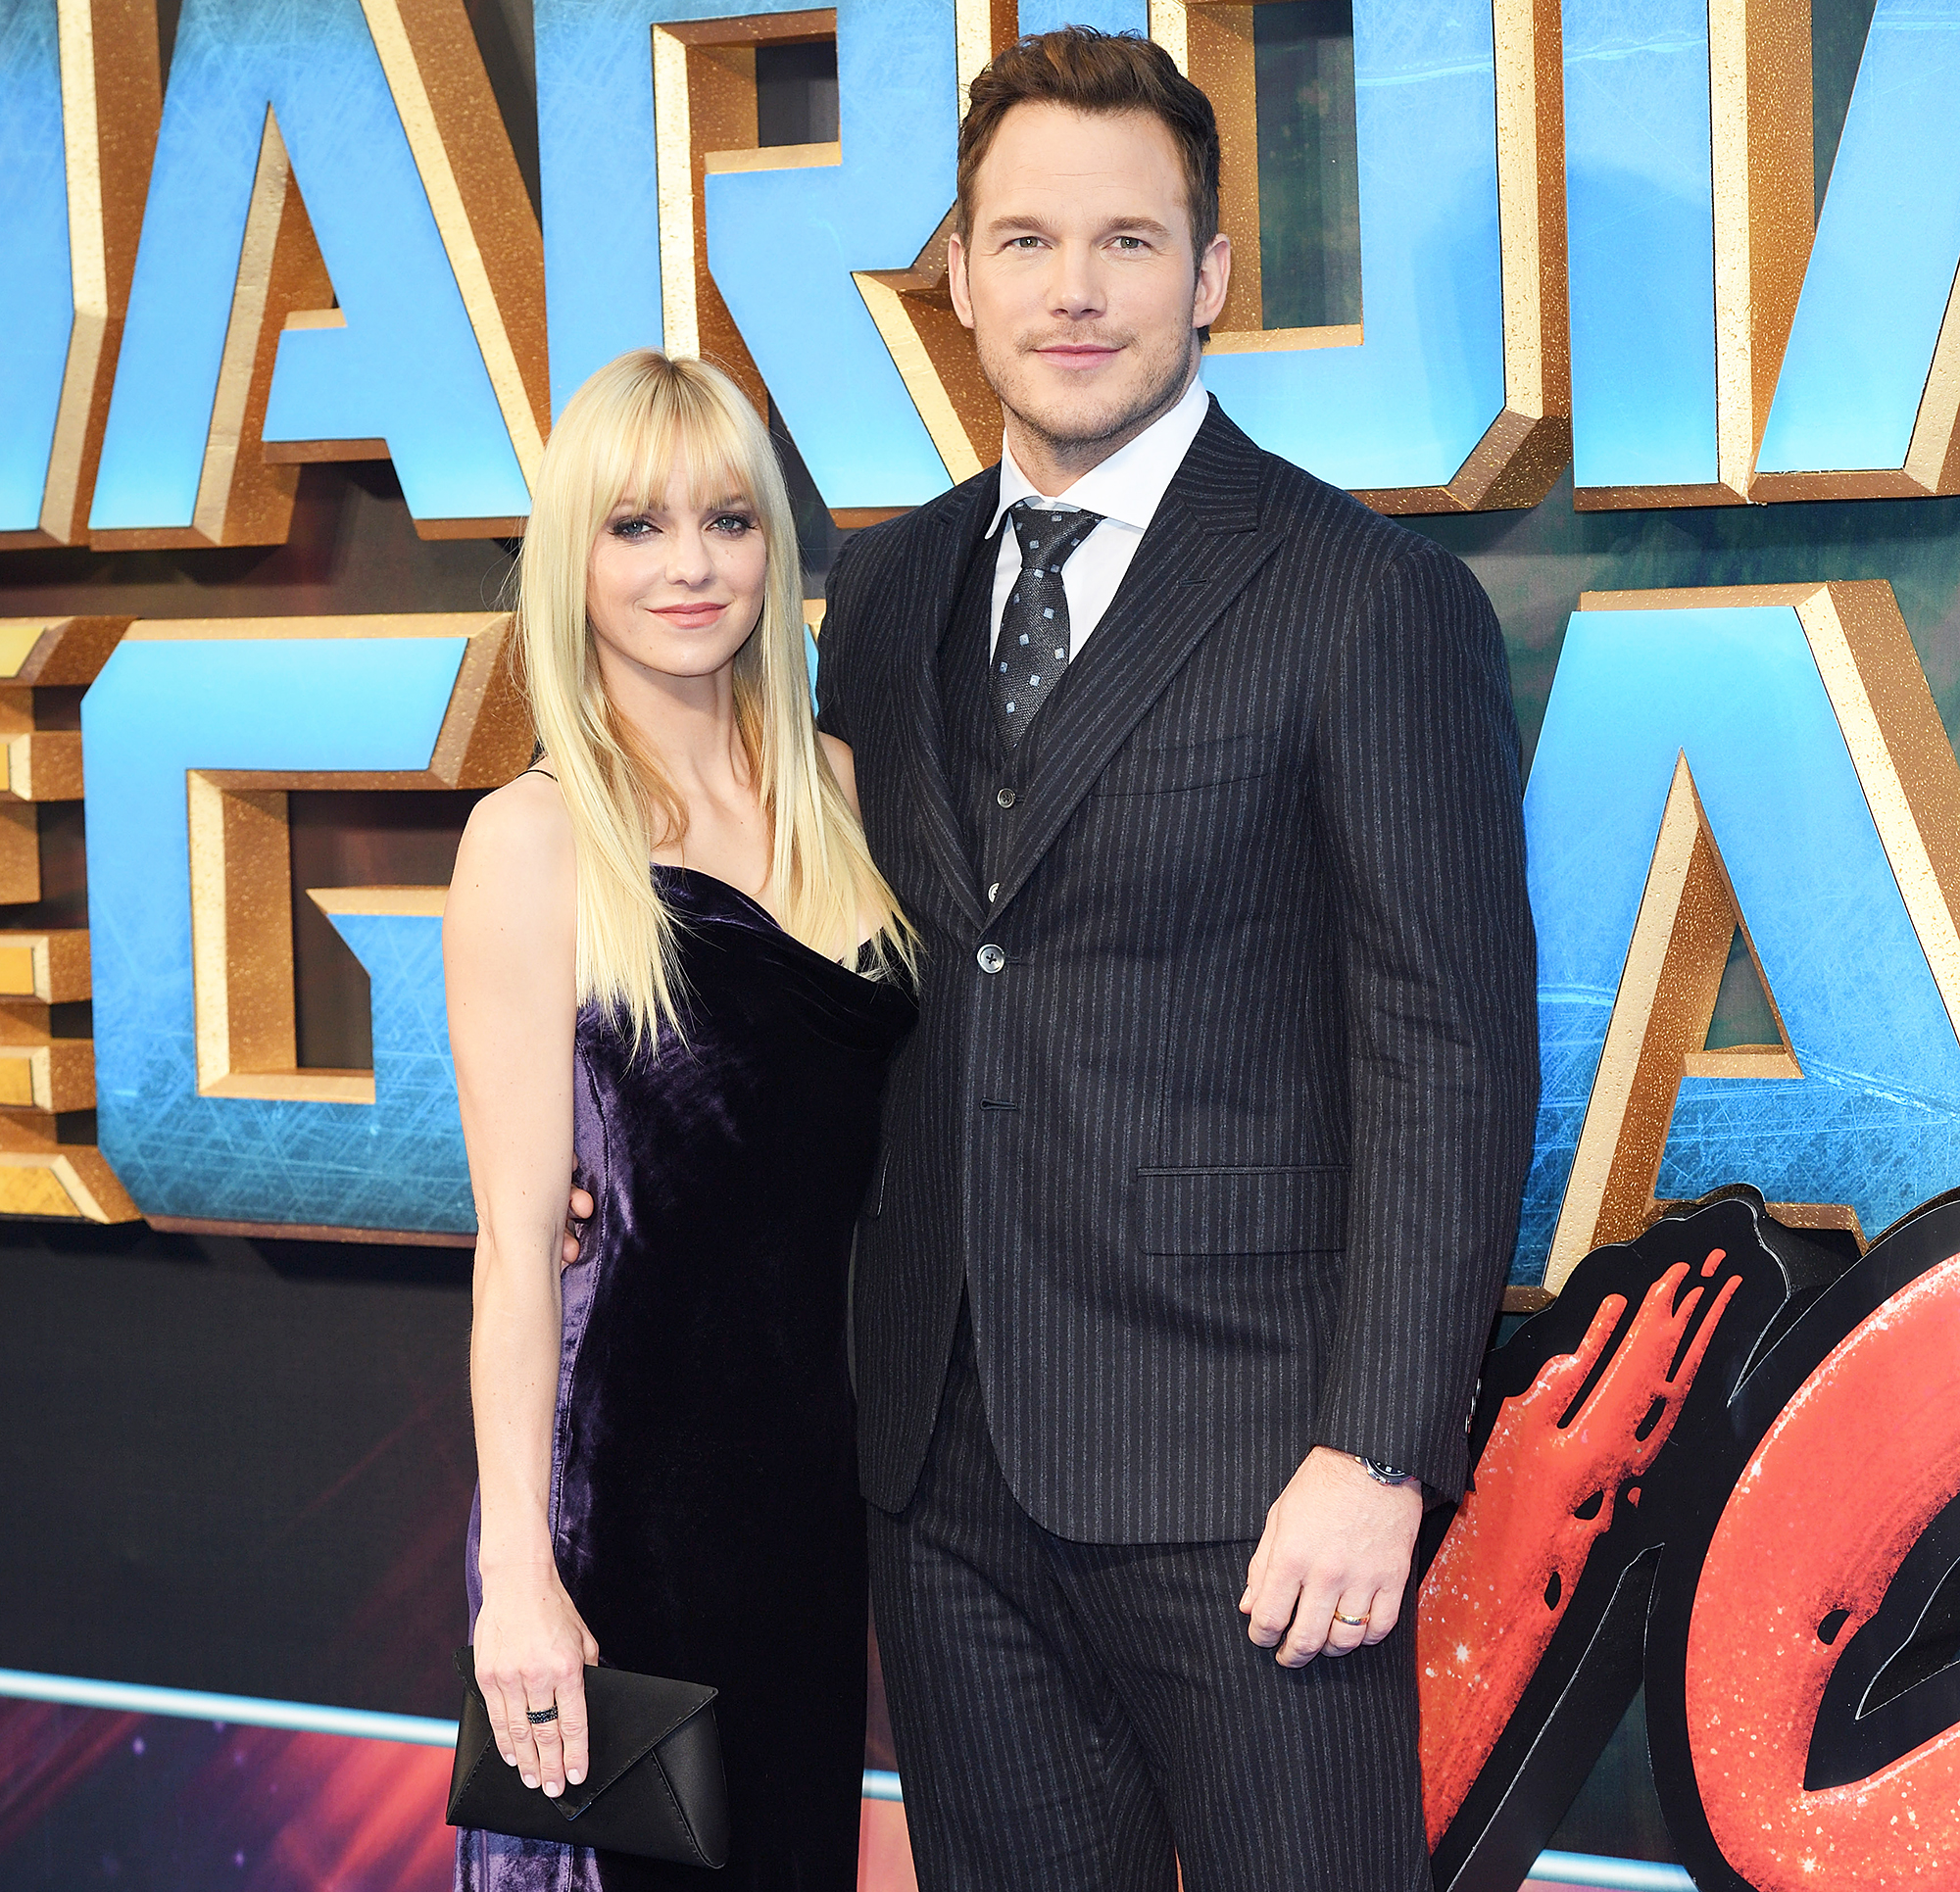 Chris Pratt Opens Up About Anna Faris Split, Admits 'Divorce Sucks'